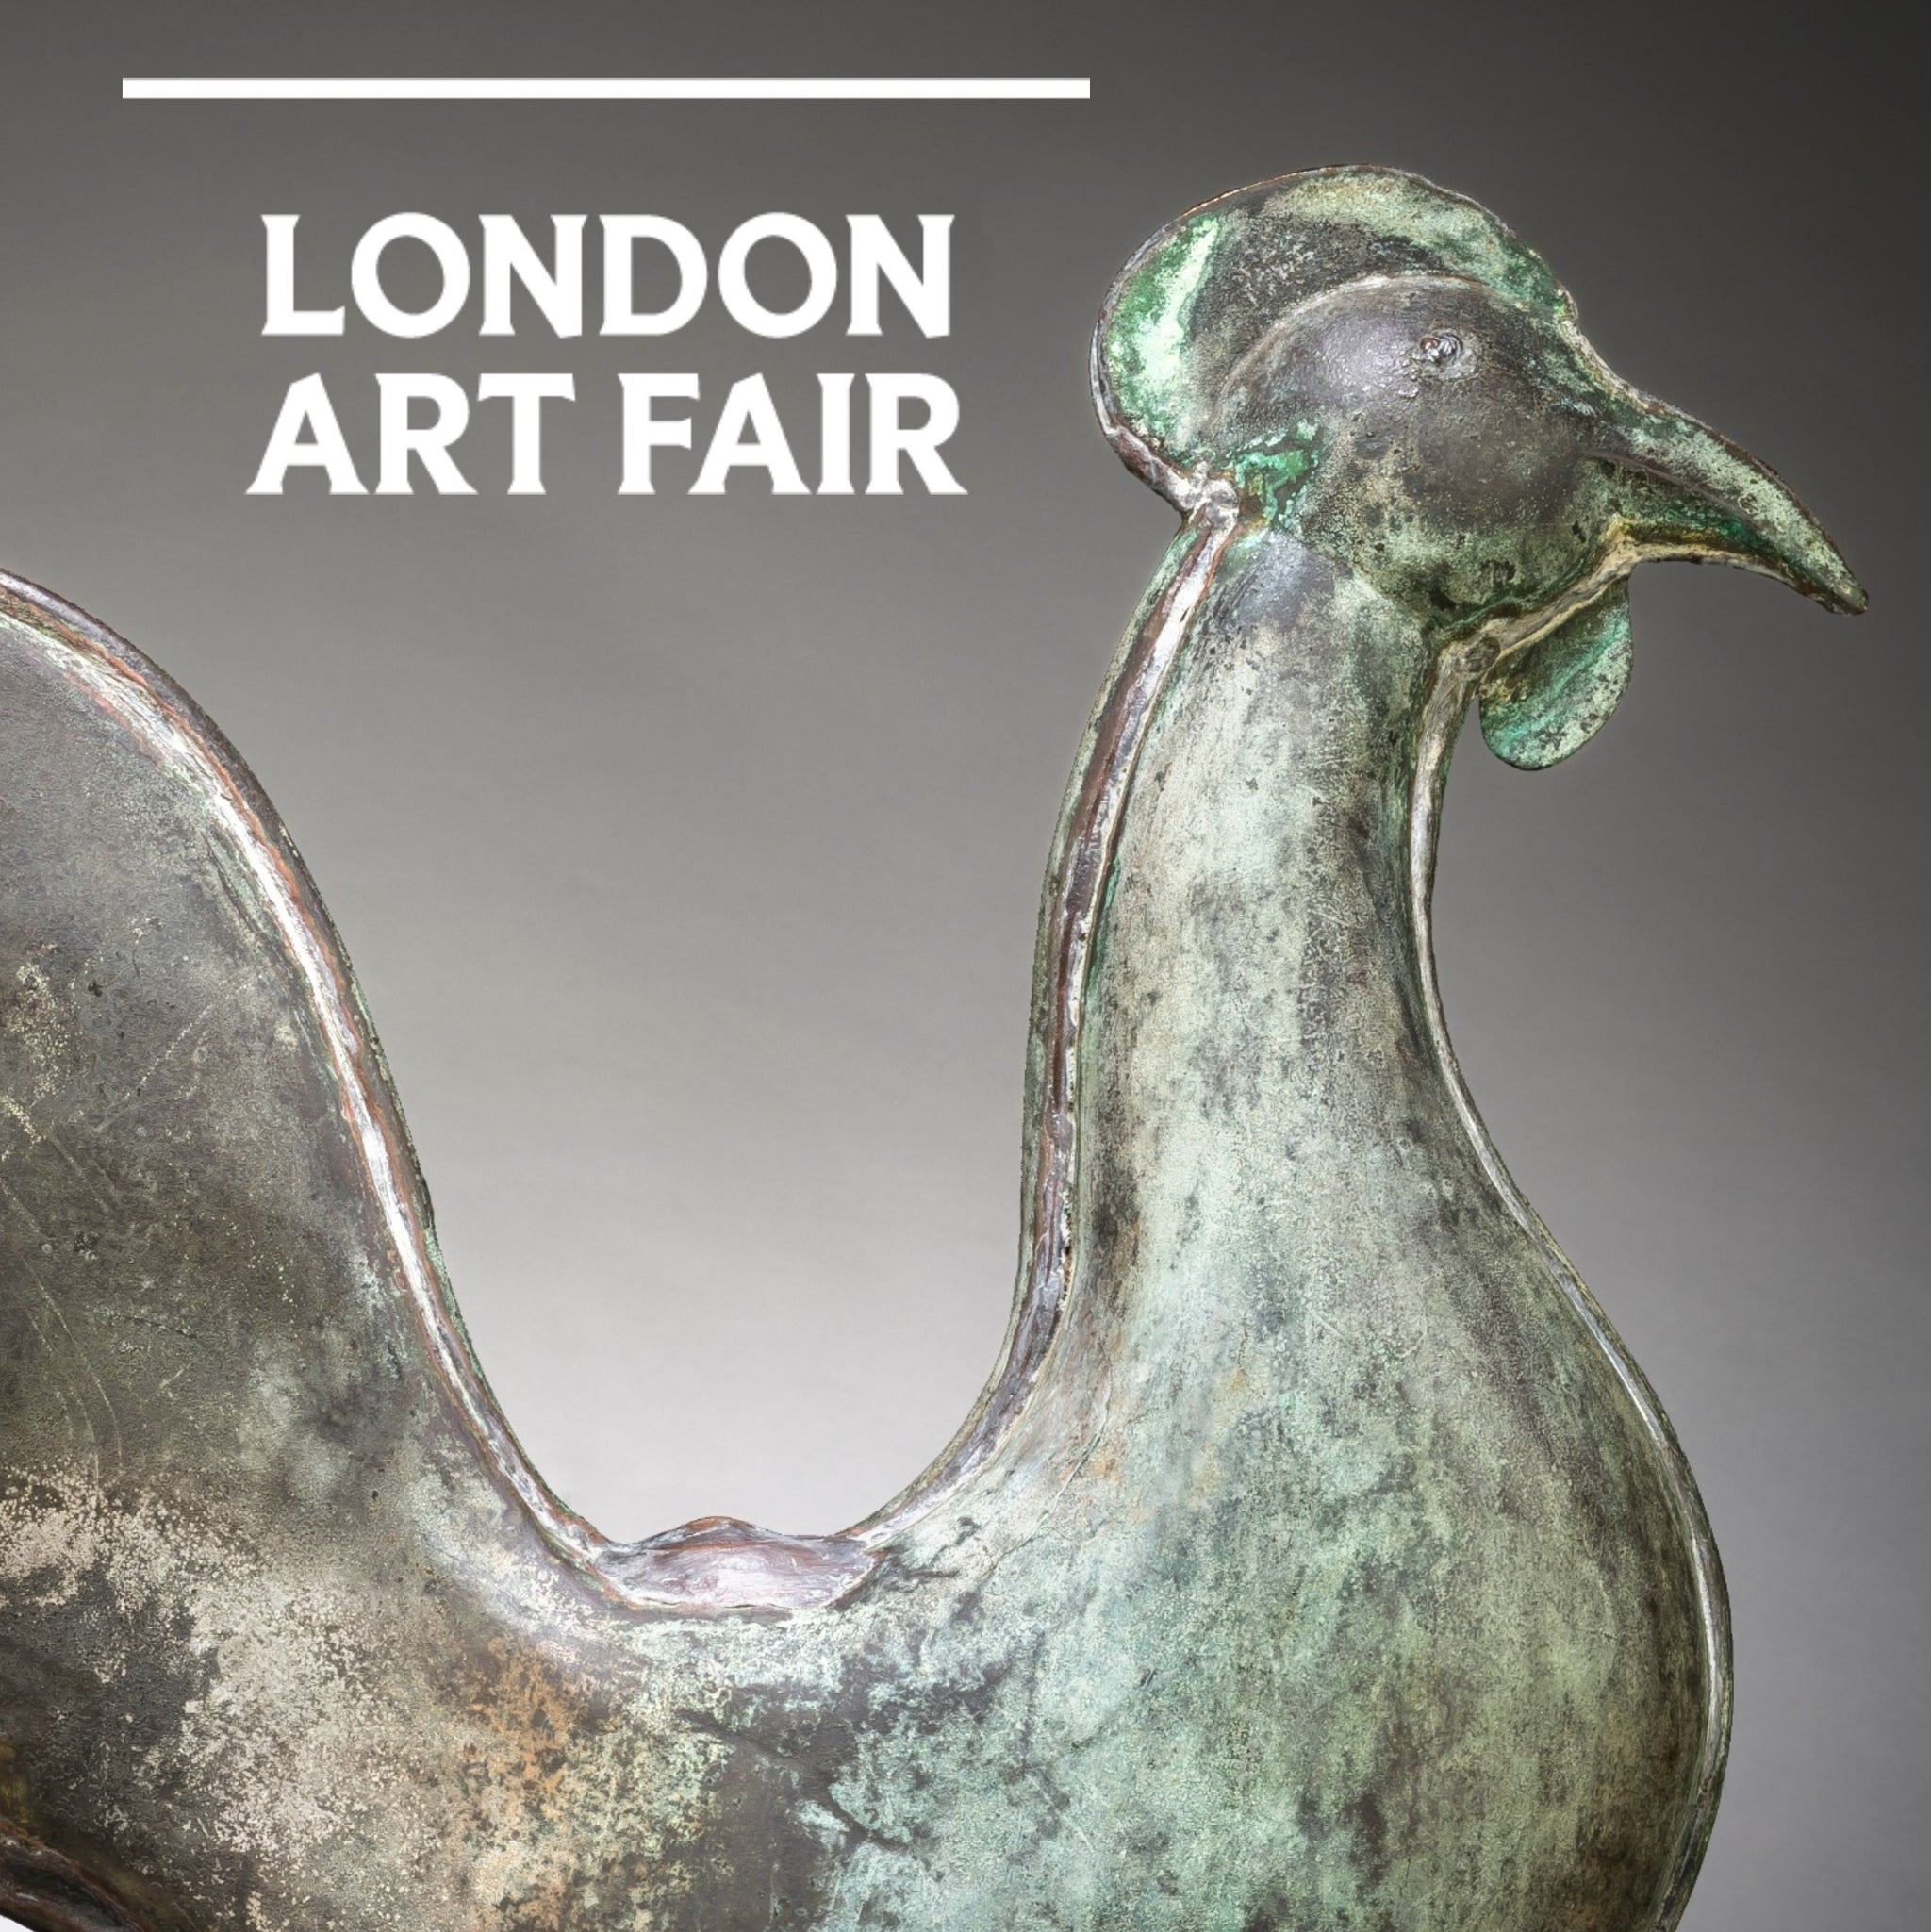 London Art Fair 2021